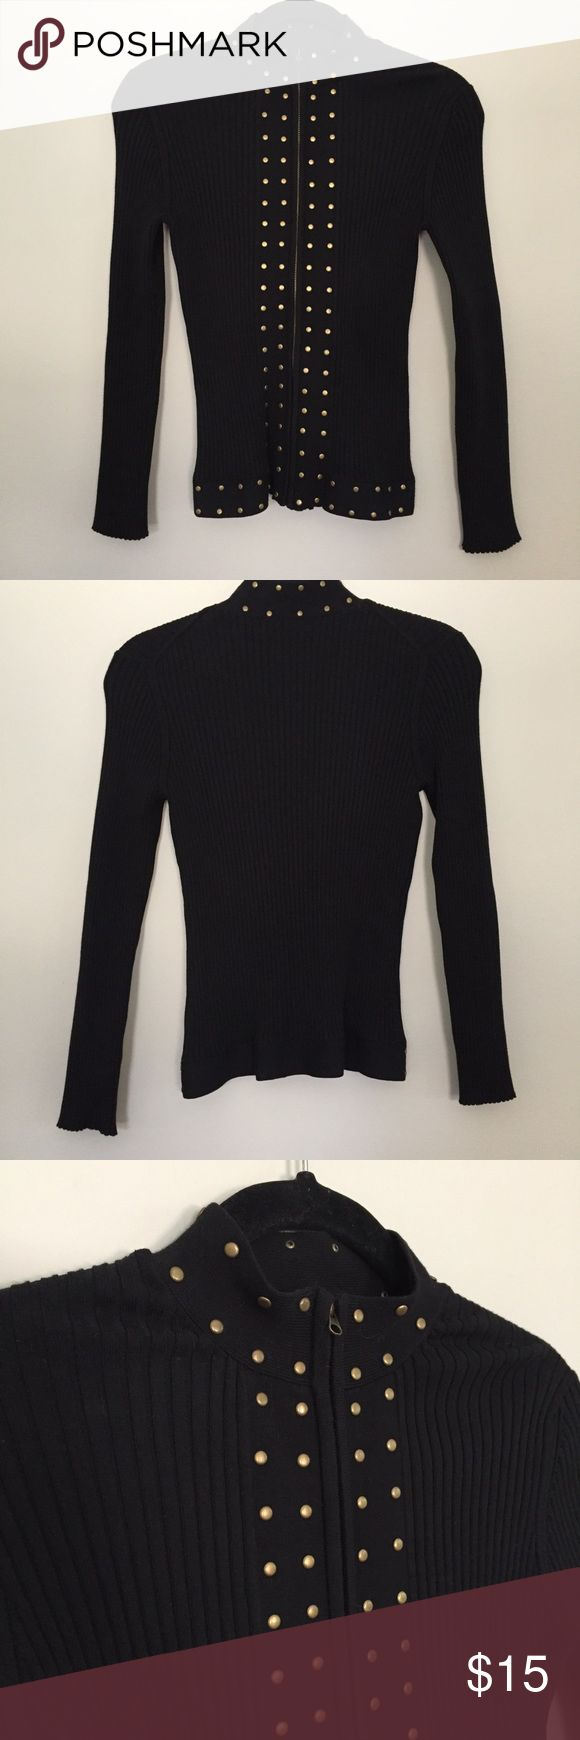 Black zip up cardigan Black ribbed zip up cardigan with gold studs. It says it's a petite large but I feel it runs small for a large. Sweaters Cardigans